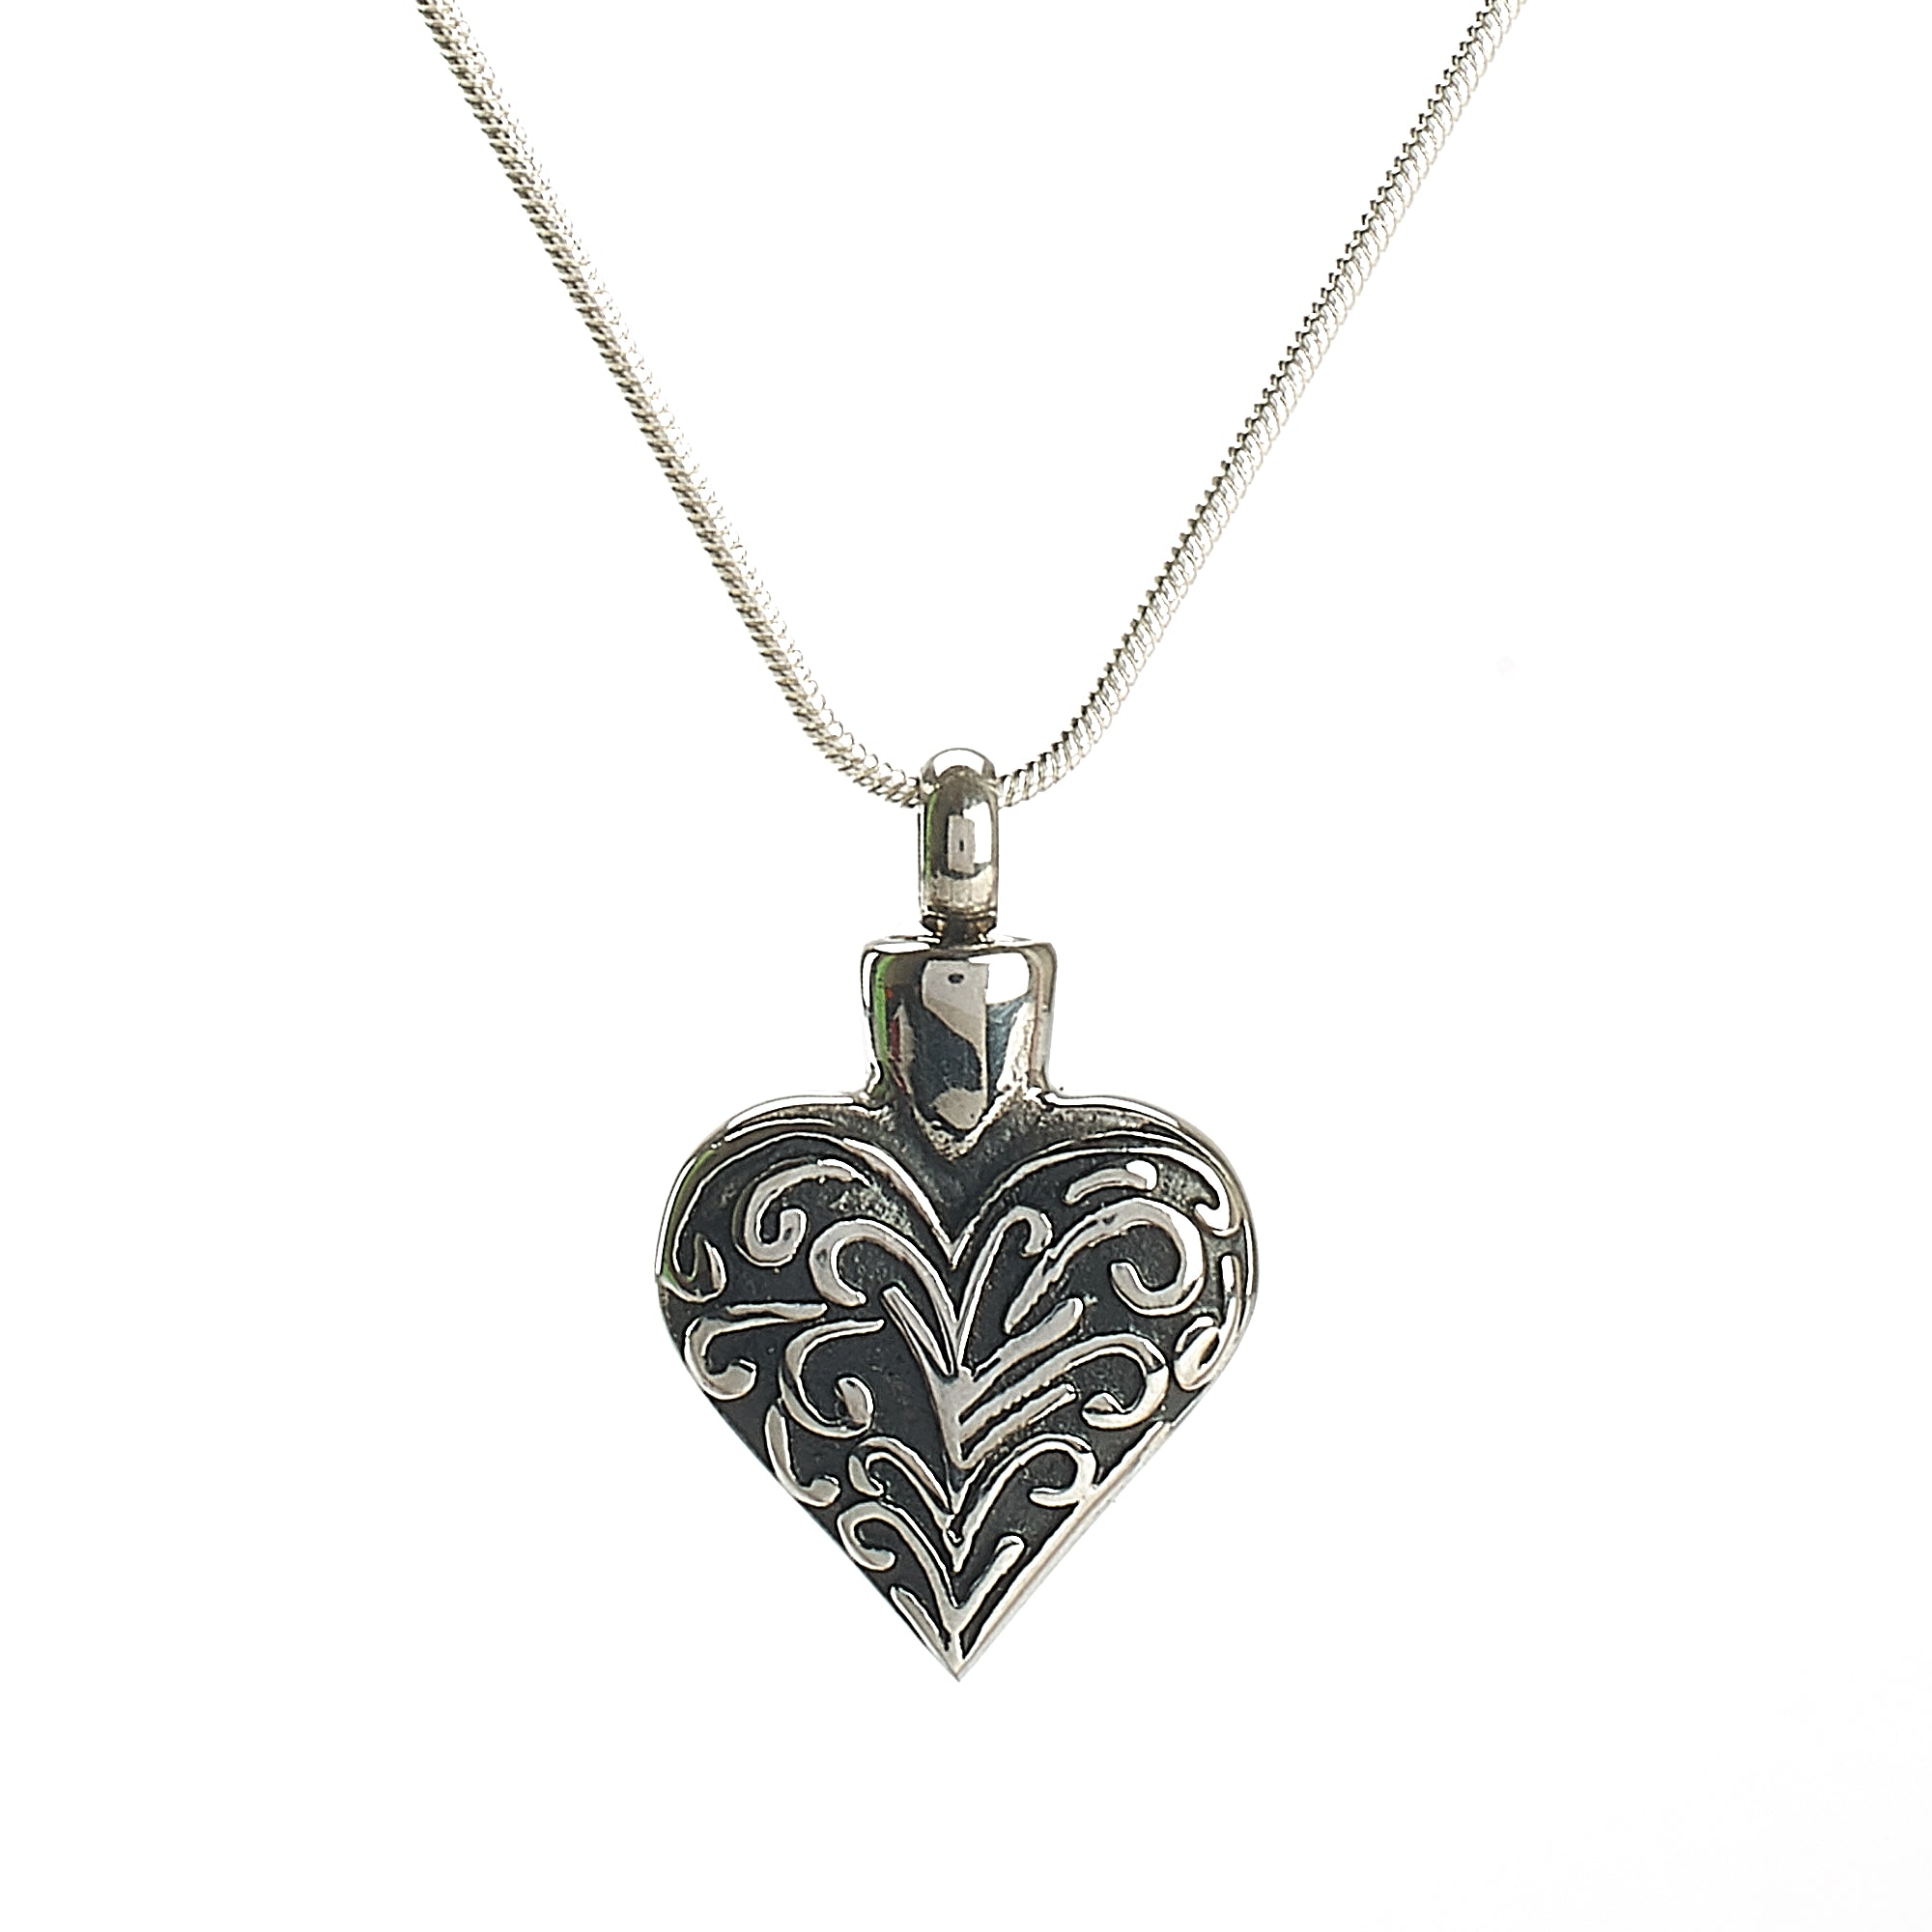 Cremation Pendant- Silver Heart with Black Accents